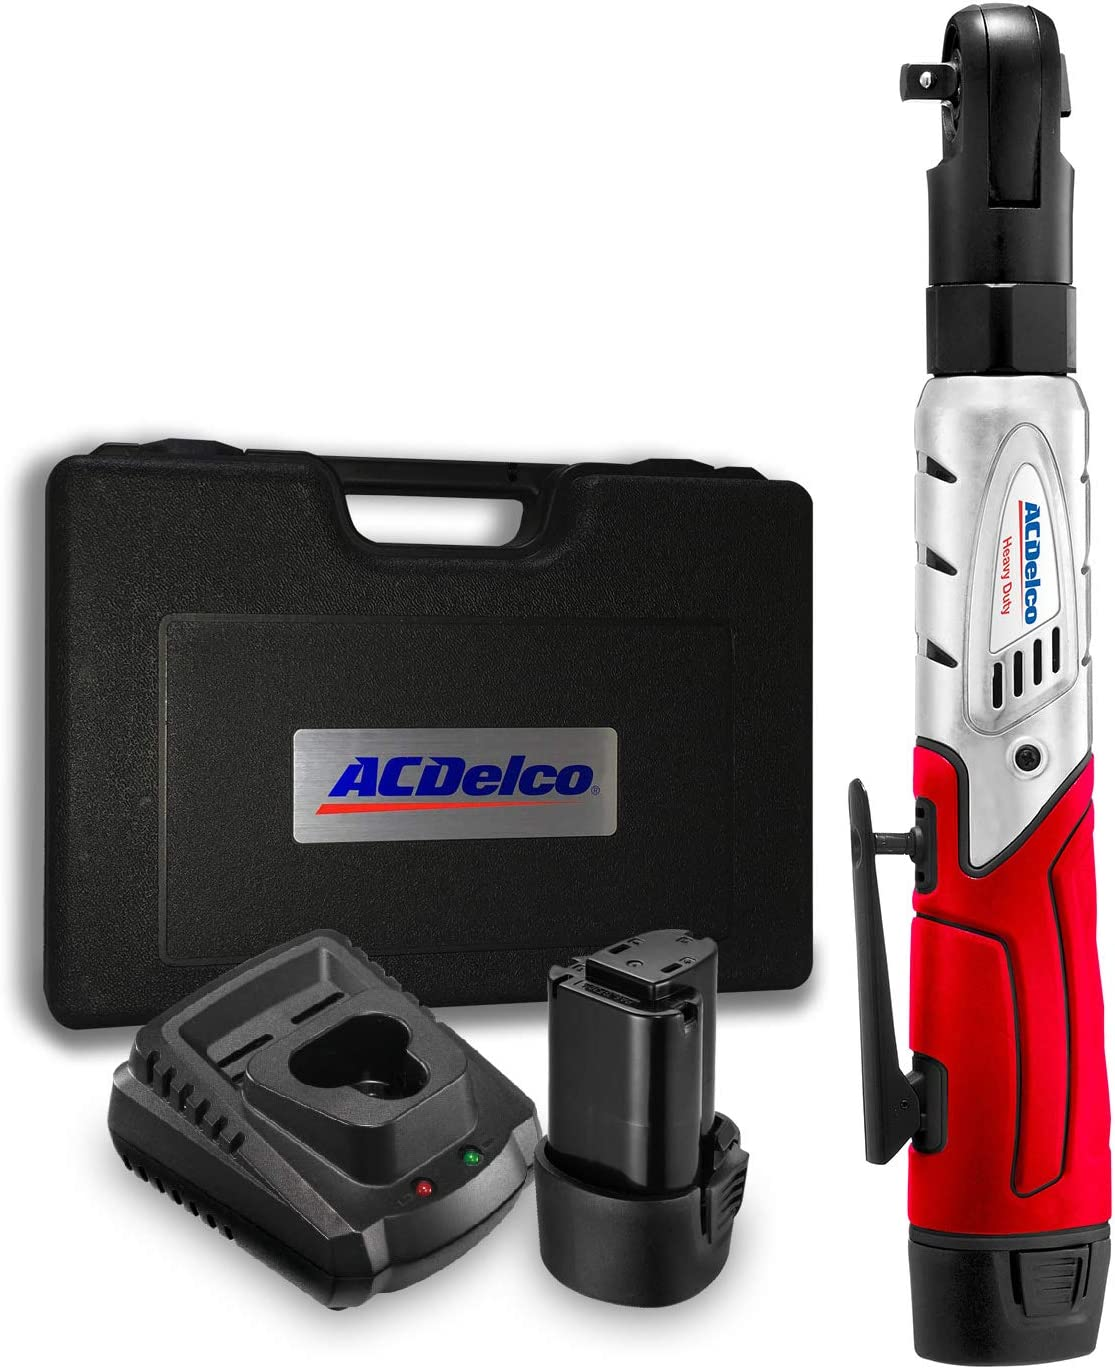 """ACDelco ARW1201 G12 Series 12V Cordless Li-ion 3/8"""" 57 ft-lbs. Ratchet Wrench Tool Kit with 2 Batteries and Carrying Case"""